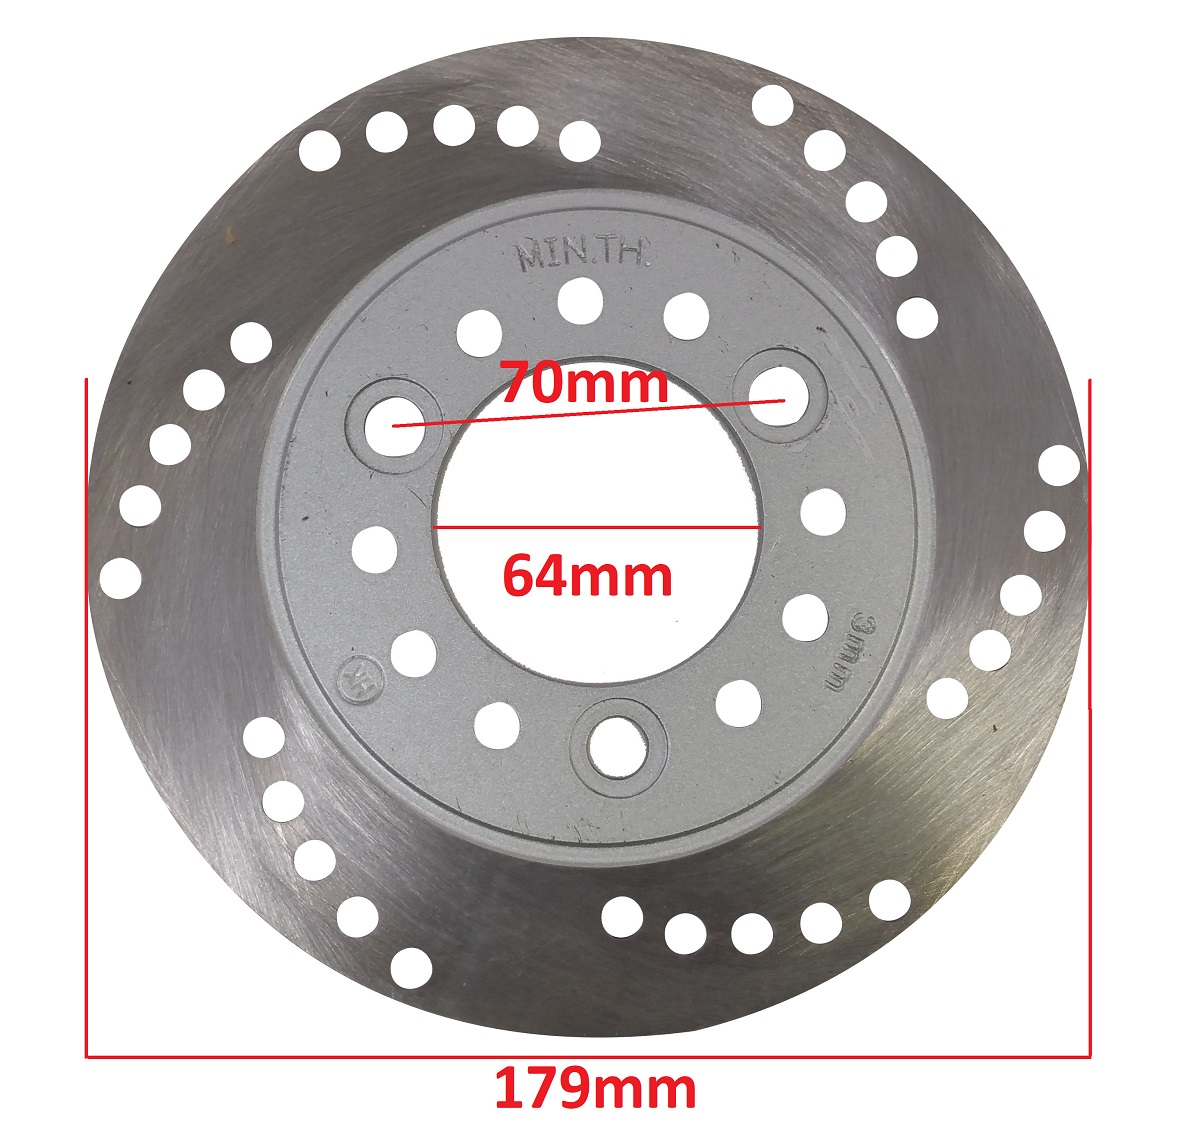 Rear Disc Brake Rotor for GY6 150cc 250cc Gas Moped Scooter Jonway Roketa M DR20